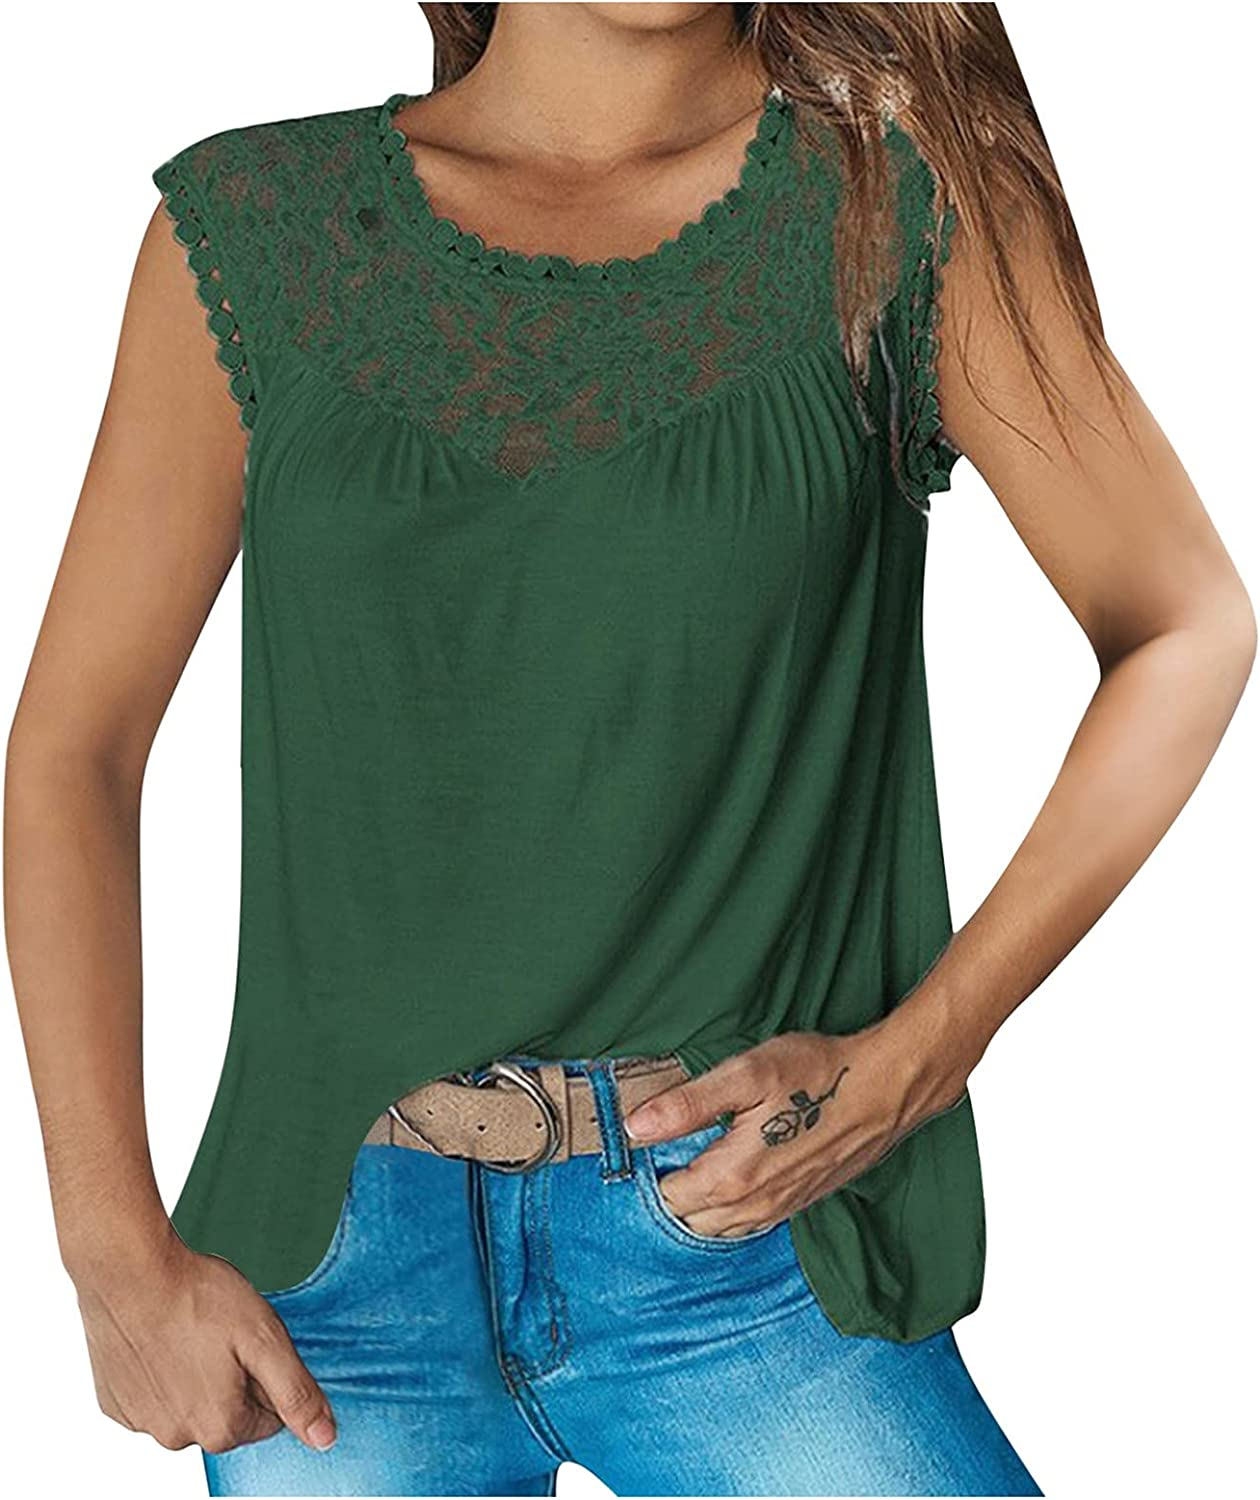 Blouses for Women Fashion, Women's Lace Stitching Can Be Worn On The Outside with A Jacket and Vest